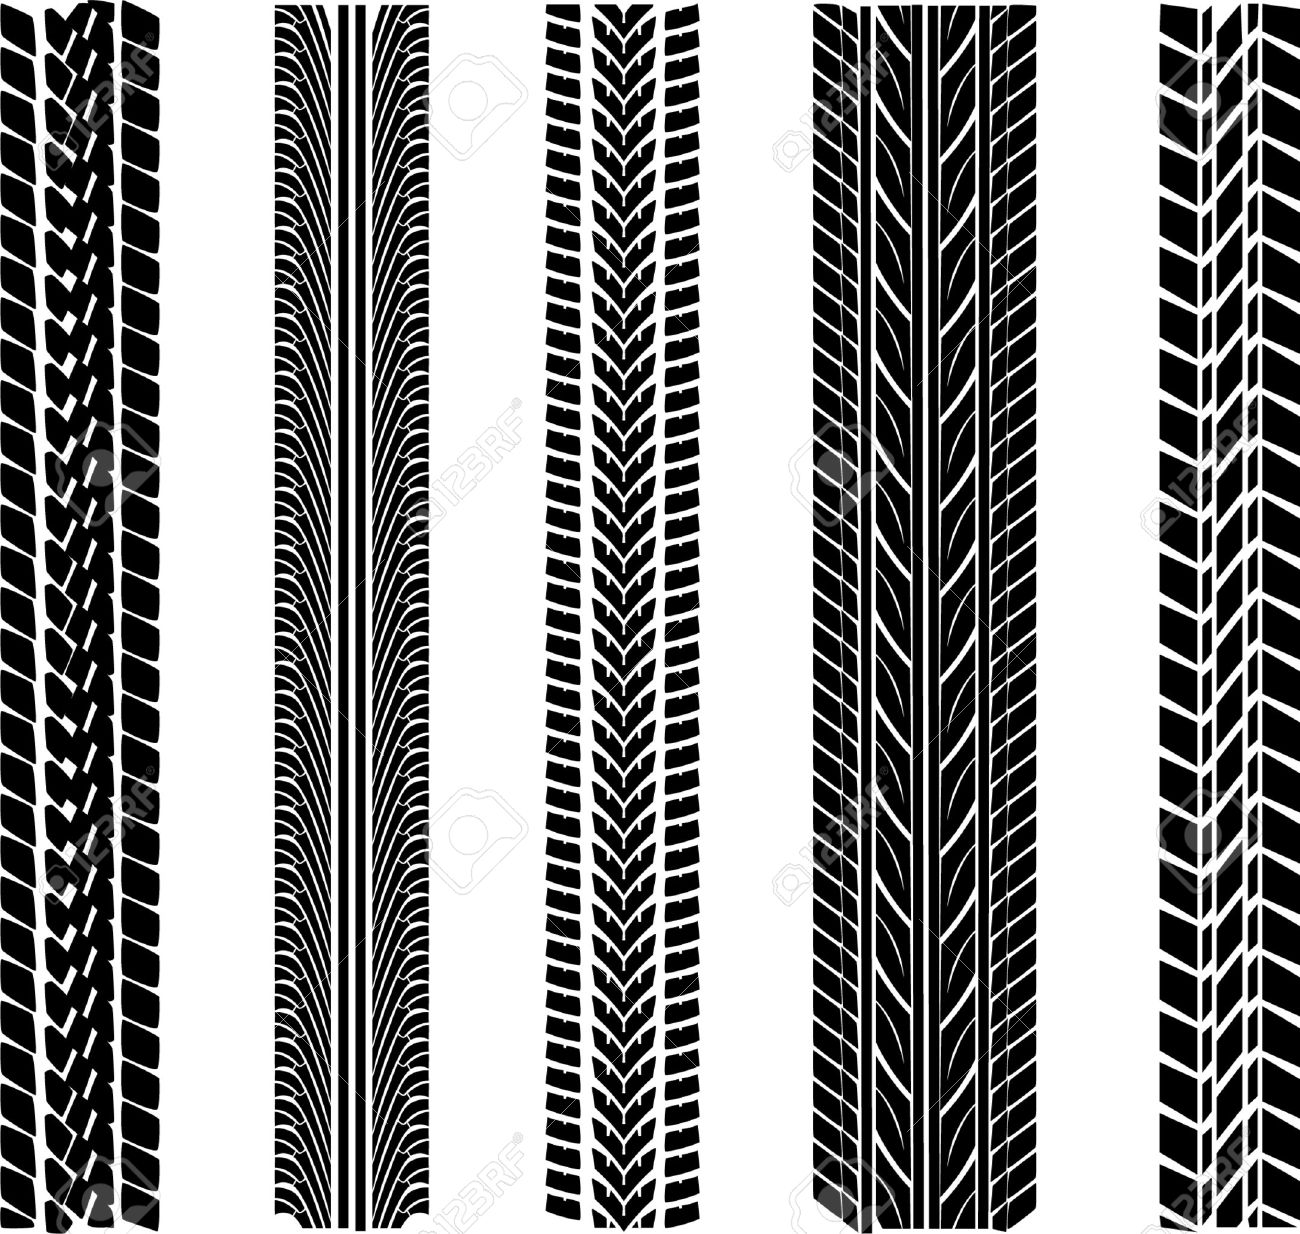 various tyre treads royalty free cliparts vectors and stock rh 123rf com tire tread vector graphic tire tread vector brush